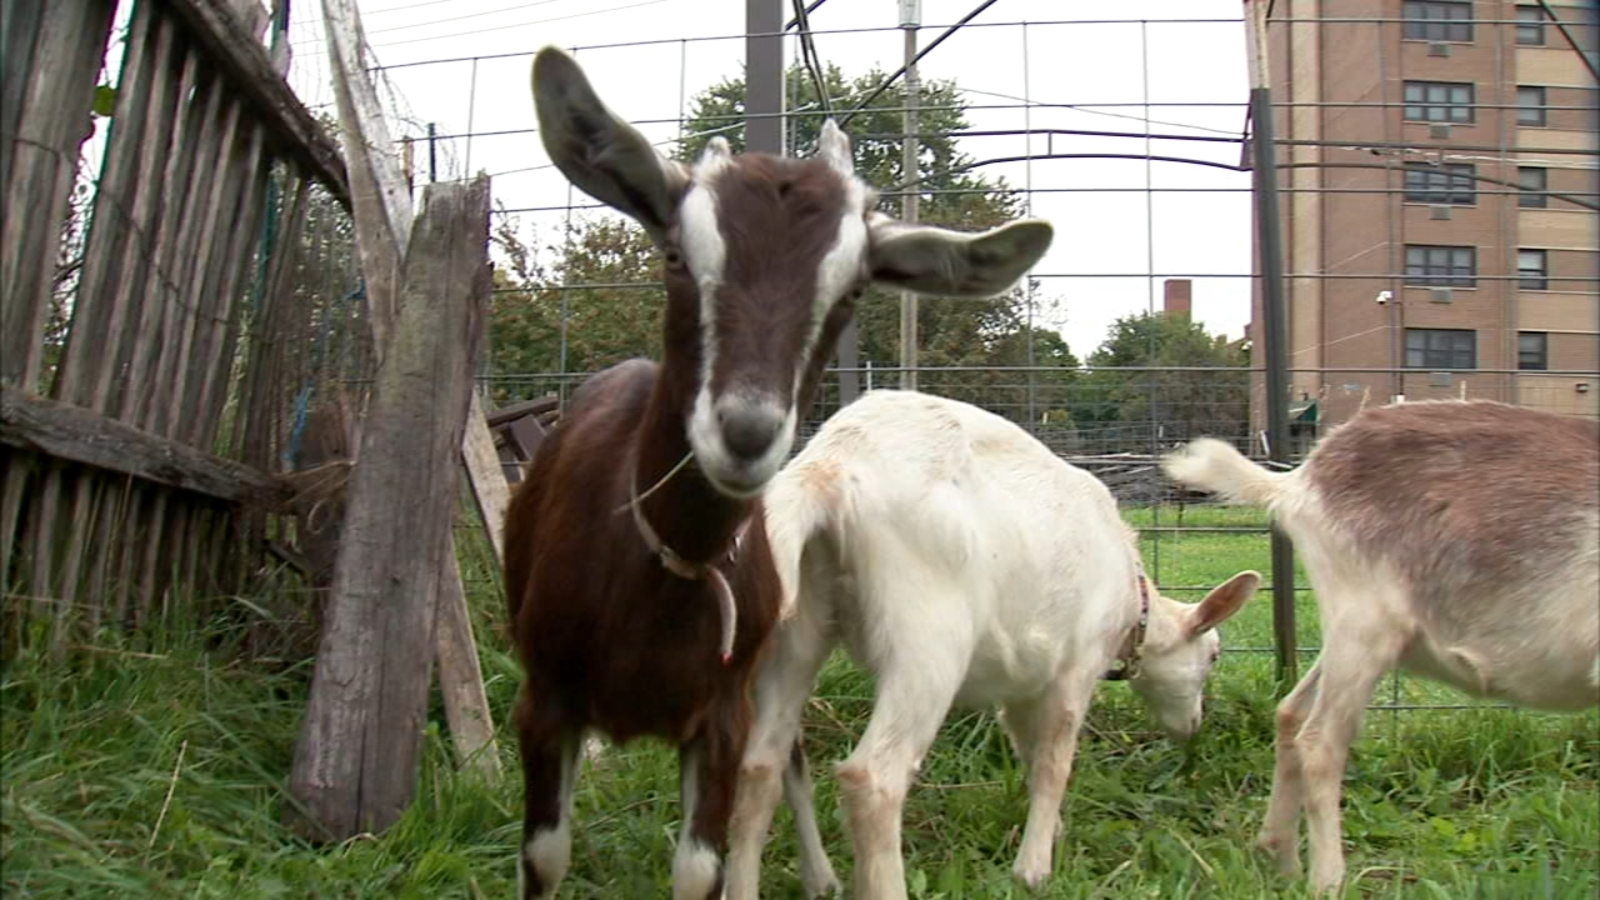 Backyard farms: Proposed ordinance aims to regulate livestock in the city